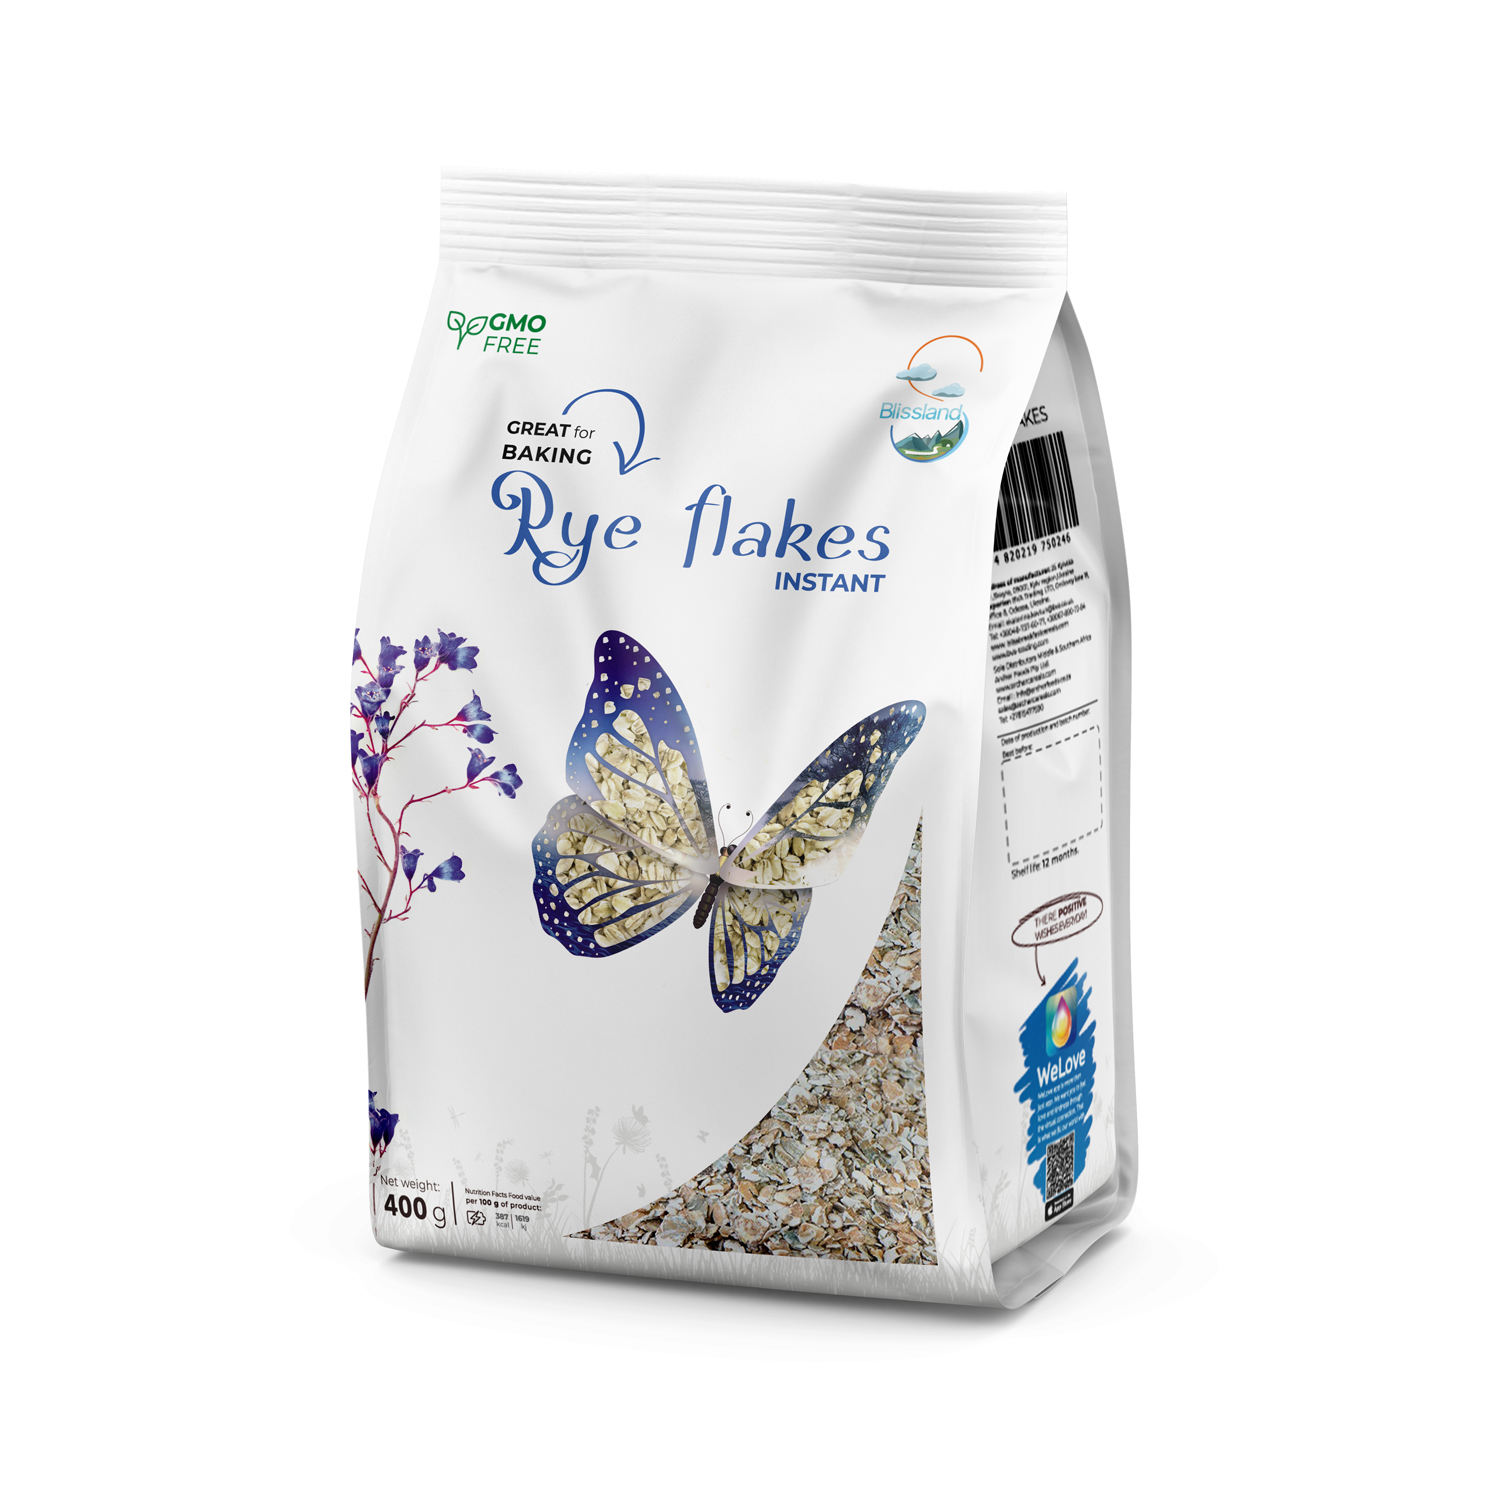 Rye flakes of instant cooking breakfast cereal